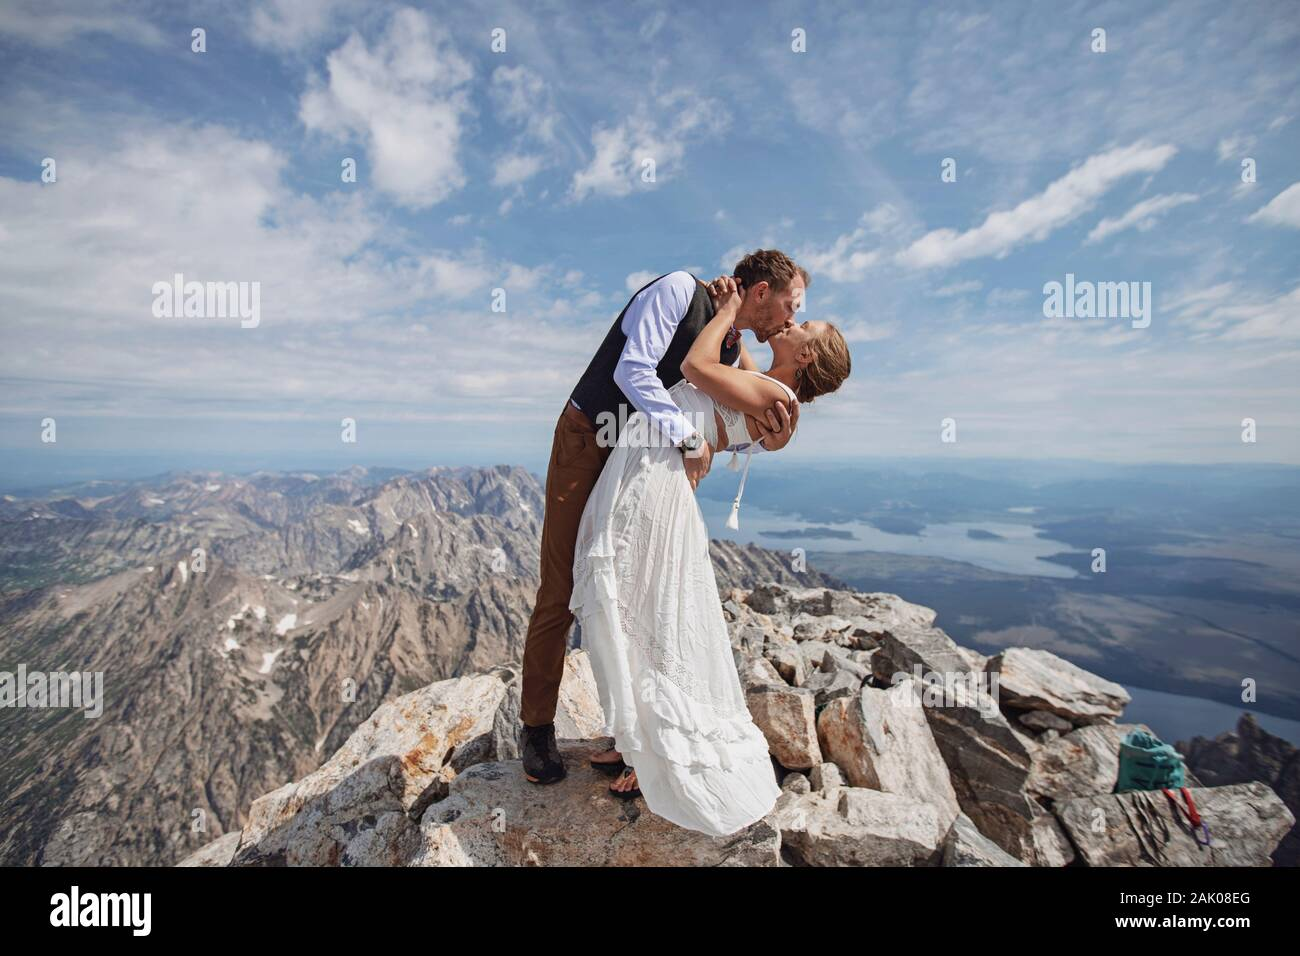 Groom dips bride after getting married on summit of mountain Stock Photo